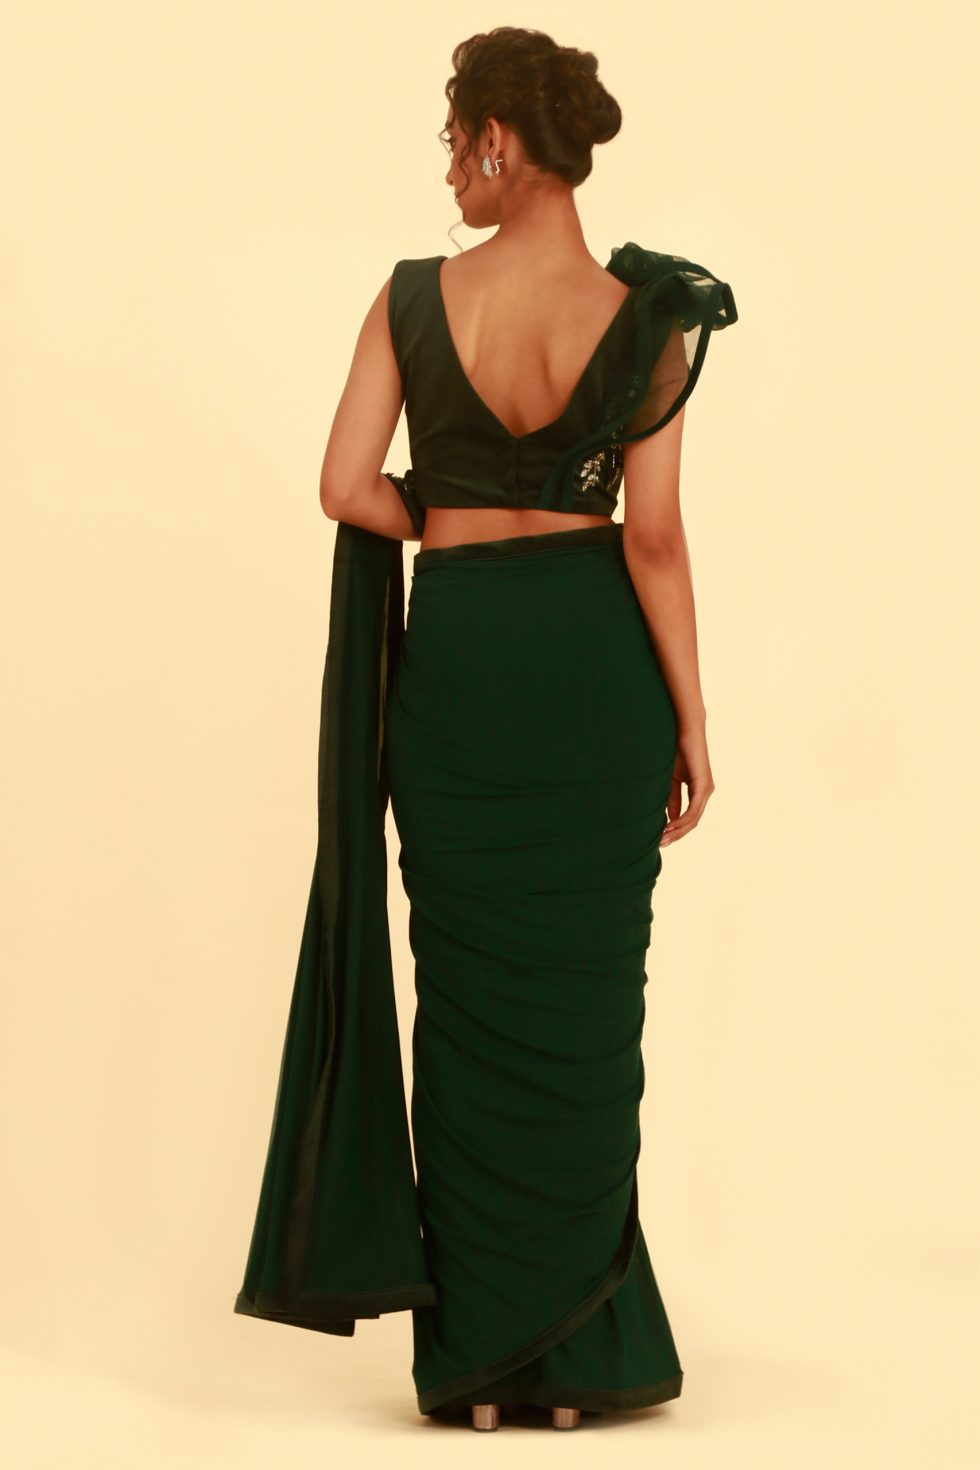 Forest green saree with matching blouse with silver embroidery and 3-D shoulder detail